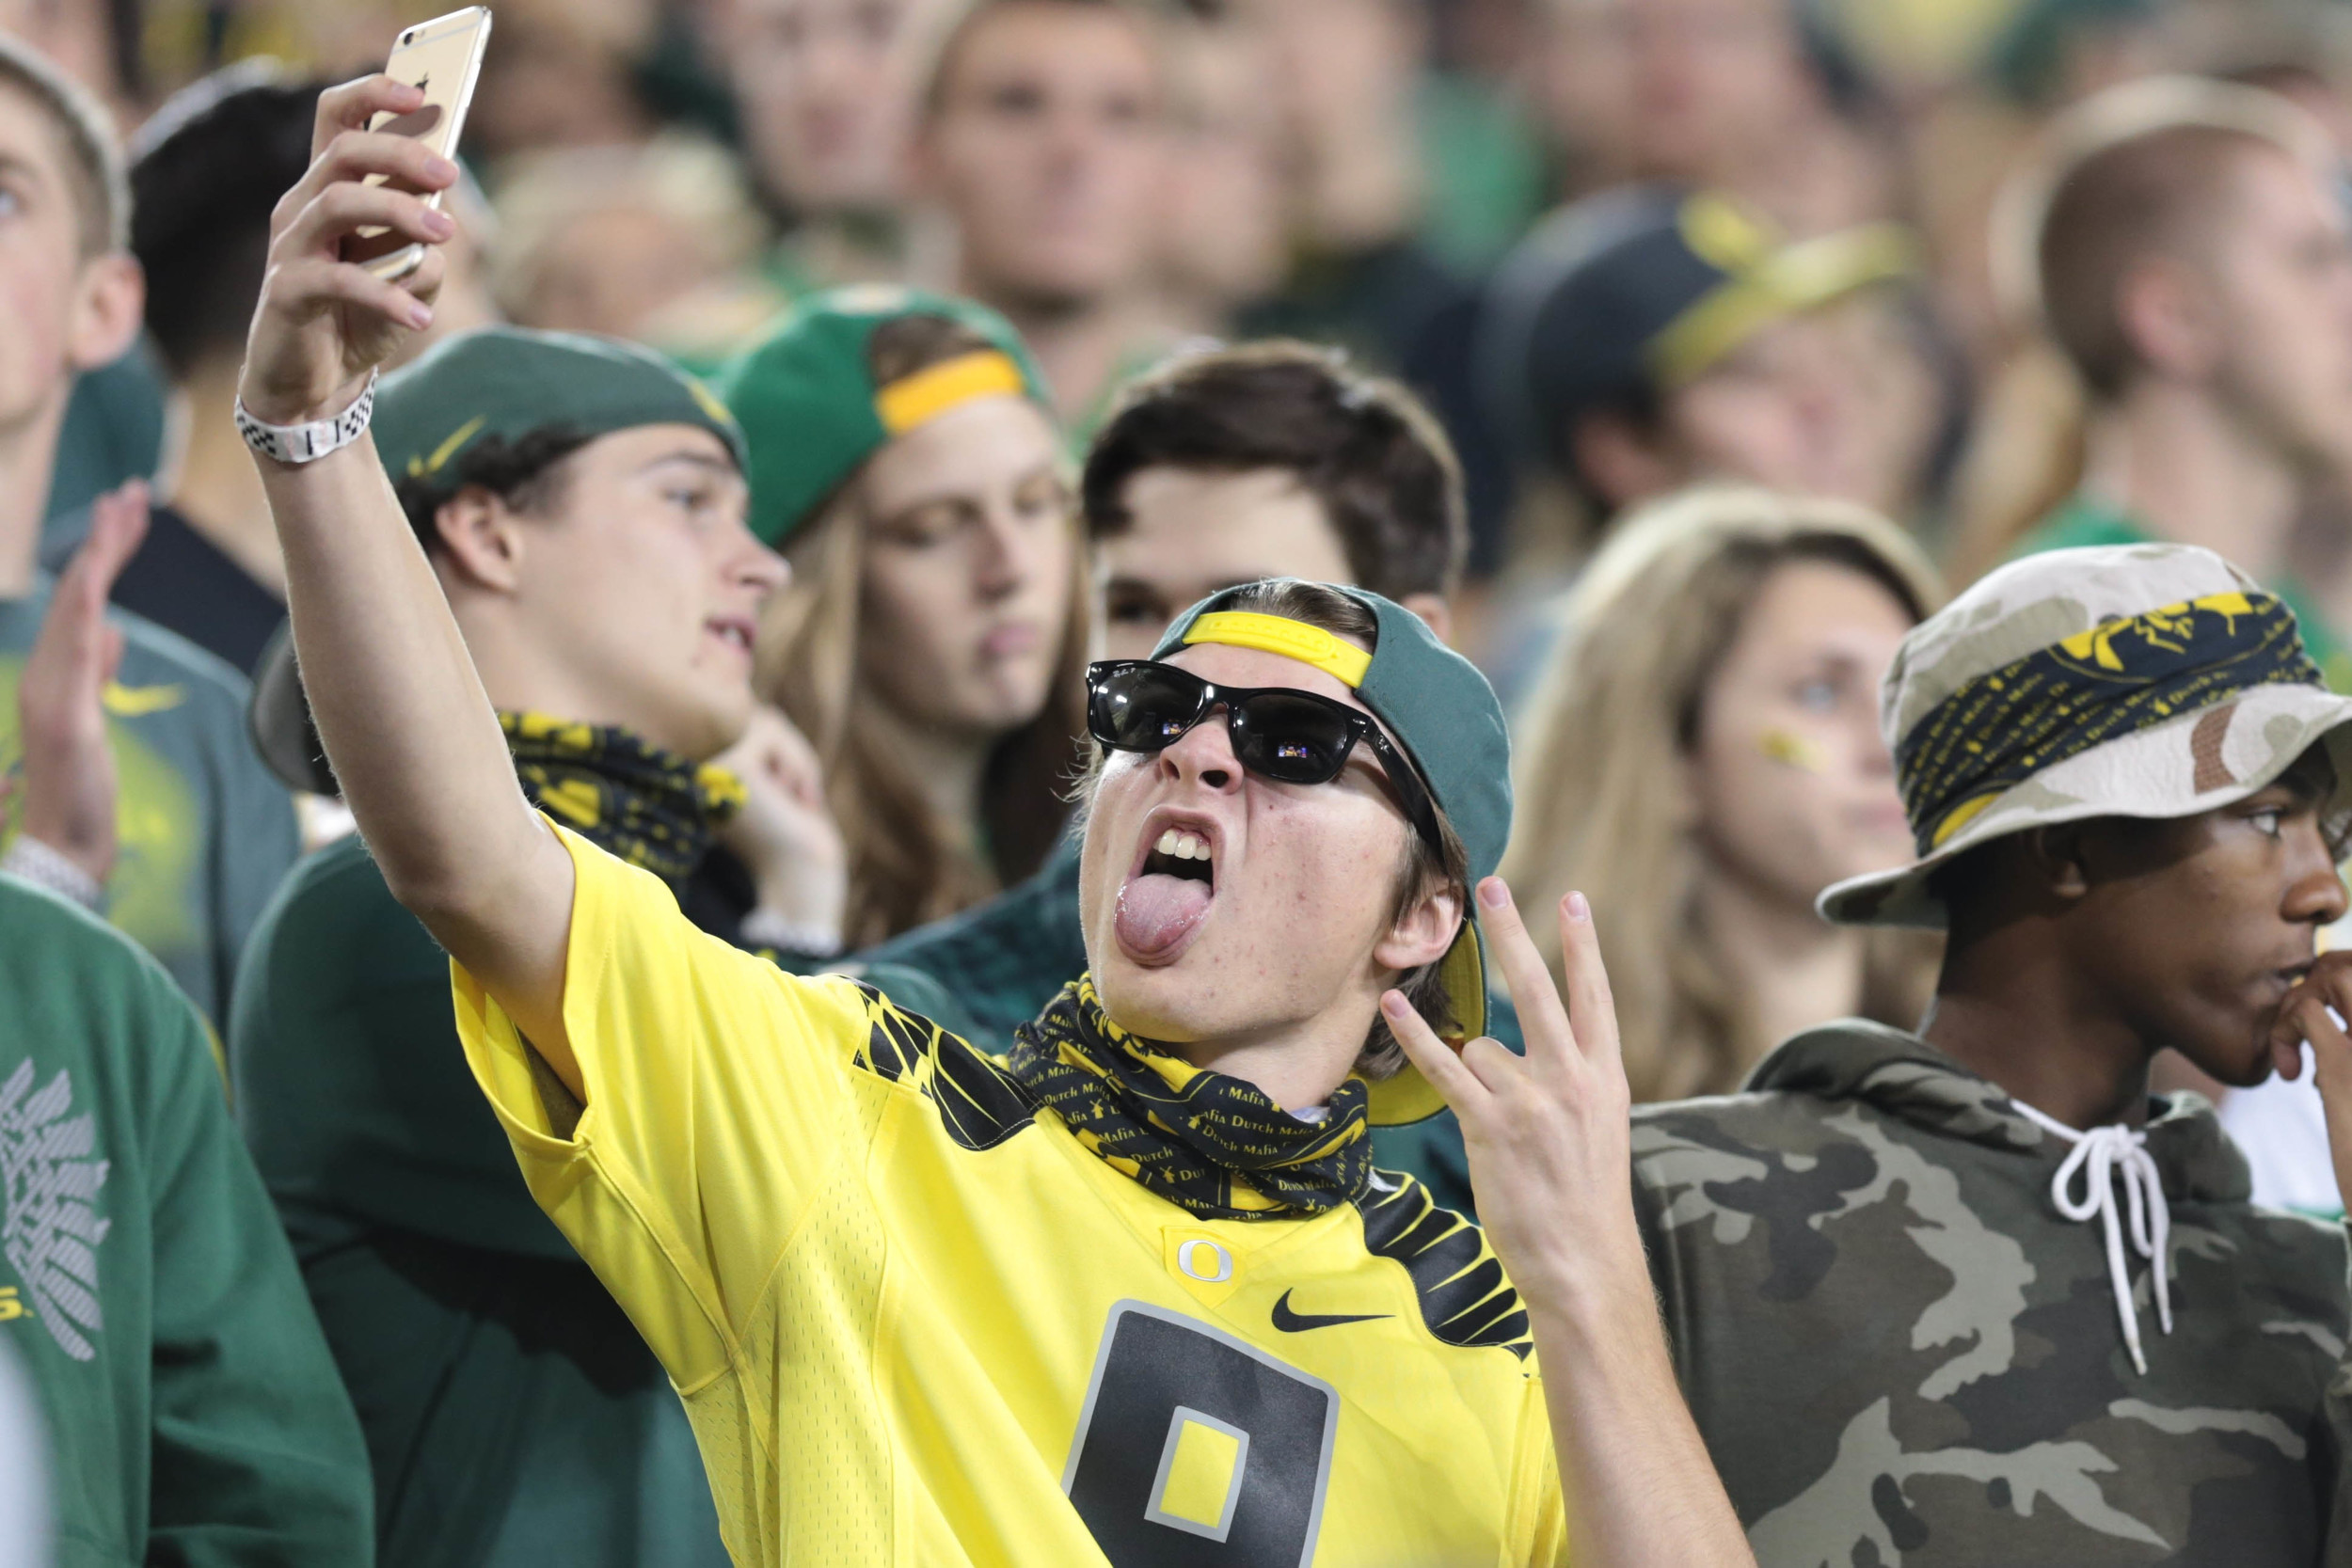 """The most undoable young man in the entire state of Oregon. Is he doing """"the shocker"""" thing? Jesus, Dane Cook was born 2000-and-late."""